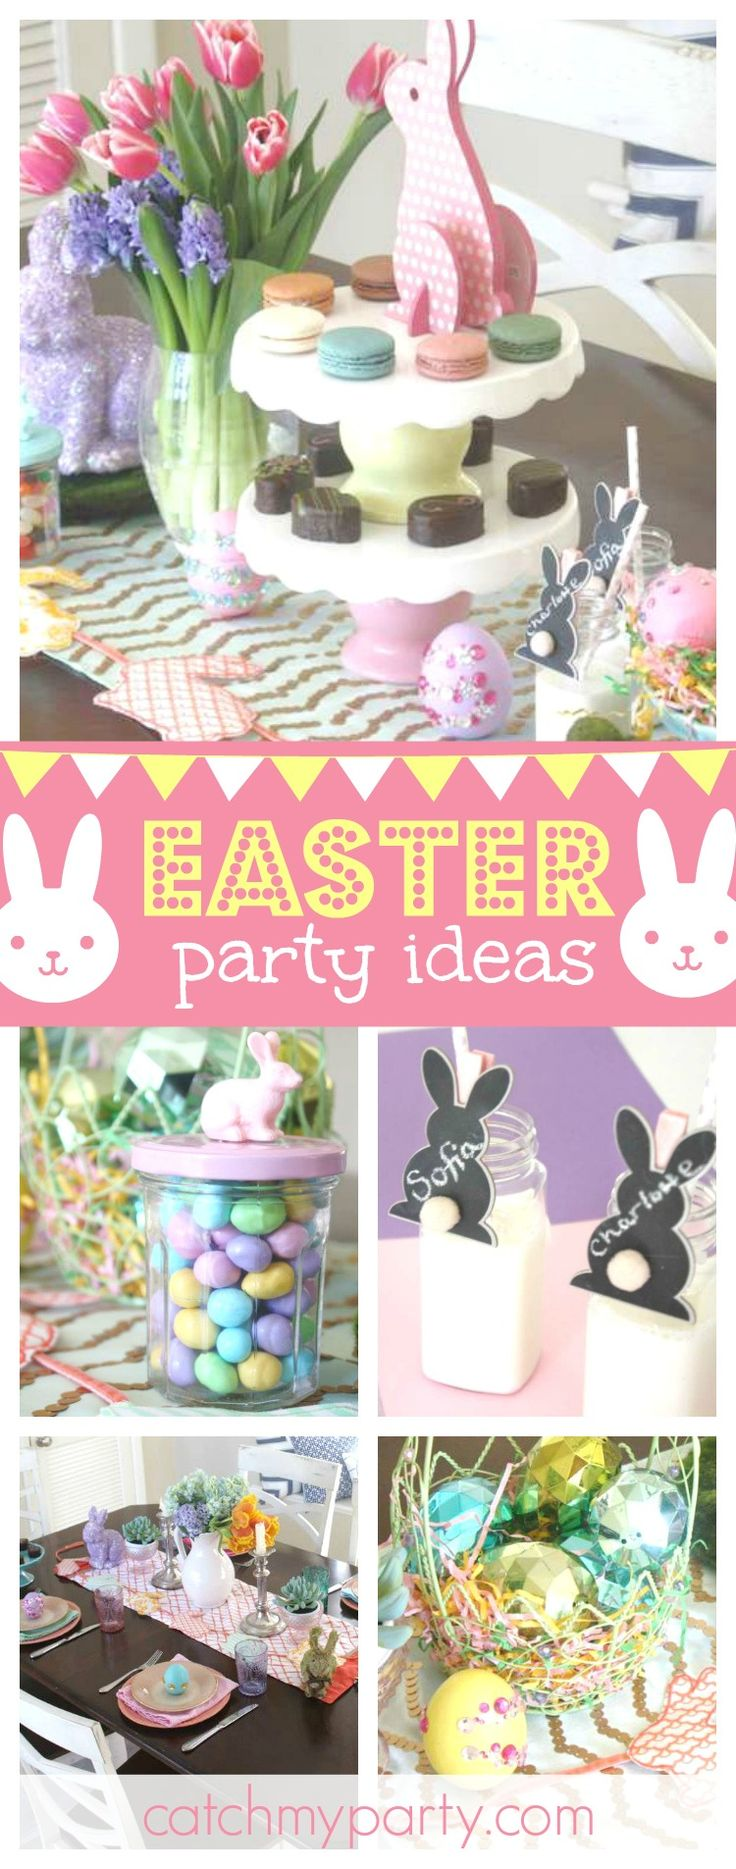 Loving this gorgeous Easter celebration. Sure to inspire!! The party favors are adorable!!See more party ideas and share yours at CatchMyParty.com